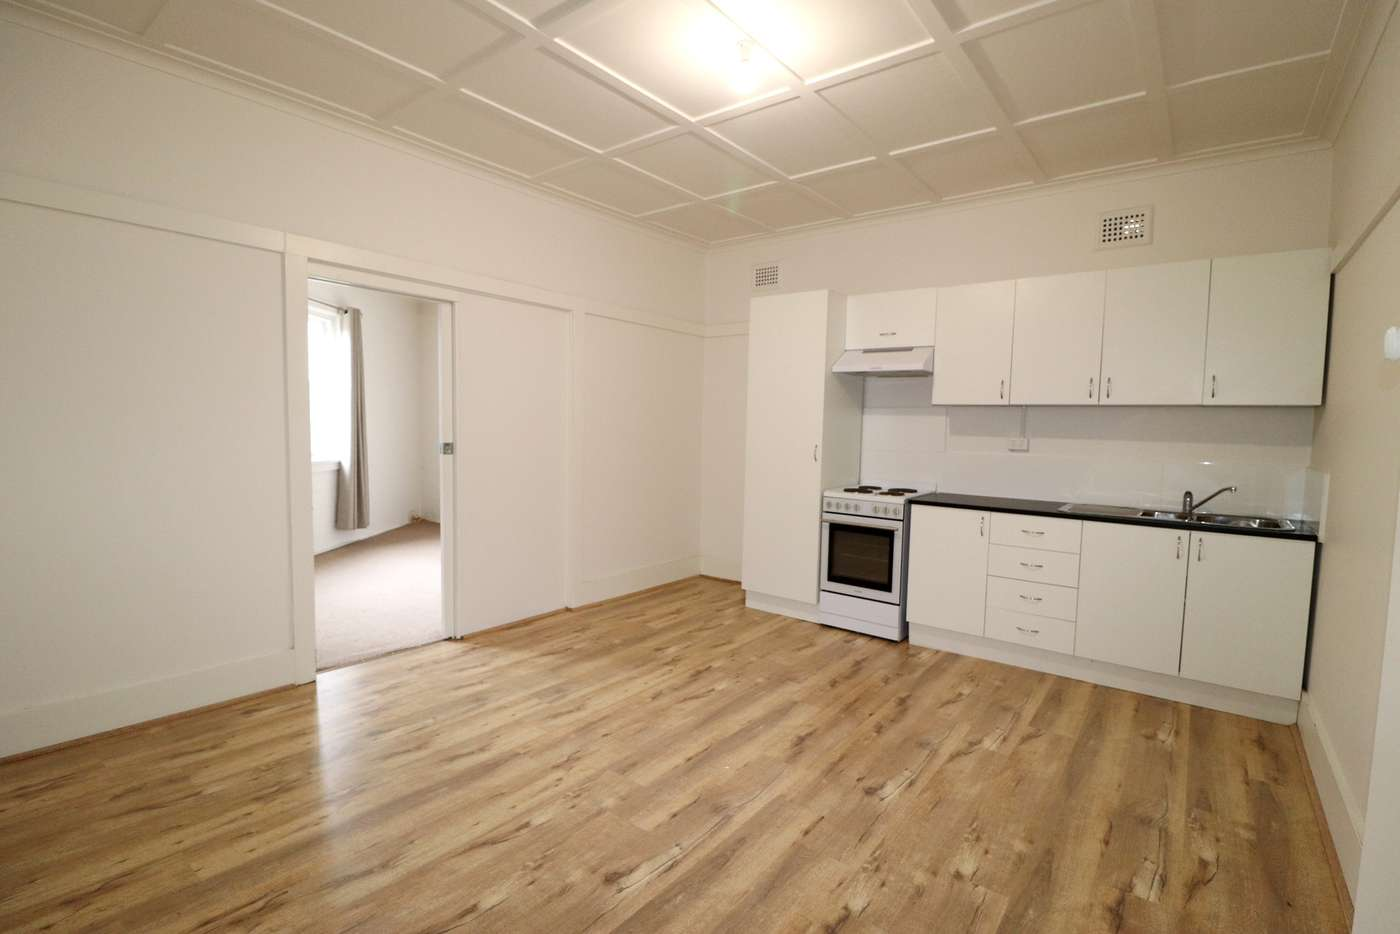 Main view of Homely unit listing, 472 Railway Parade, Allawah NSW 2218